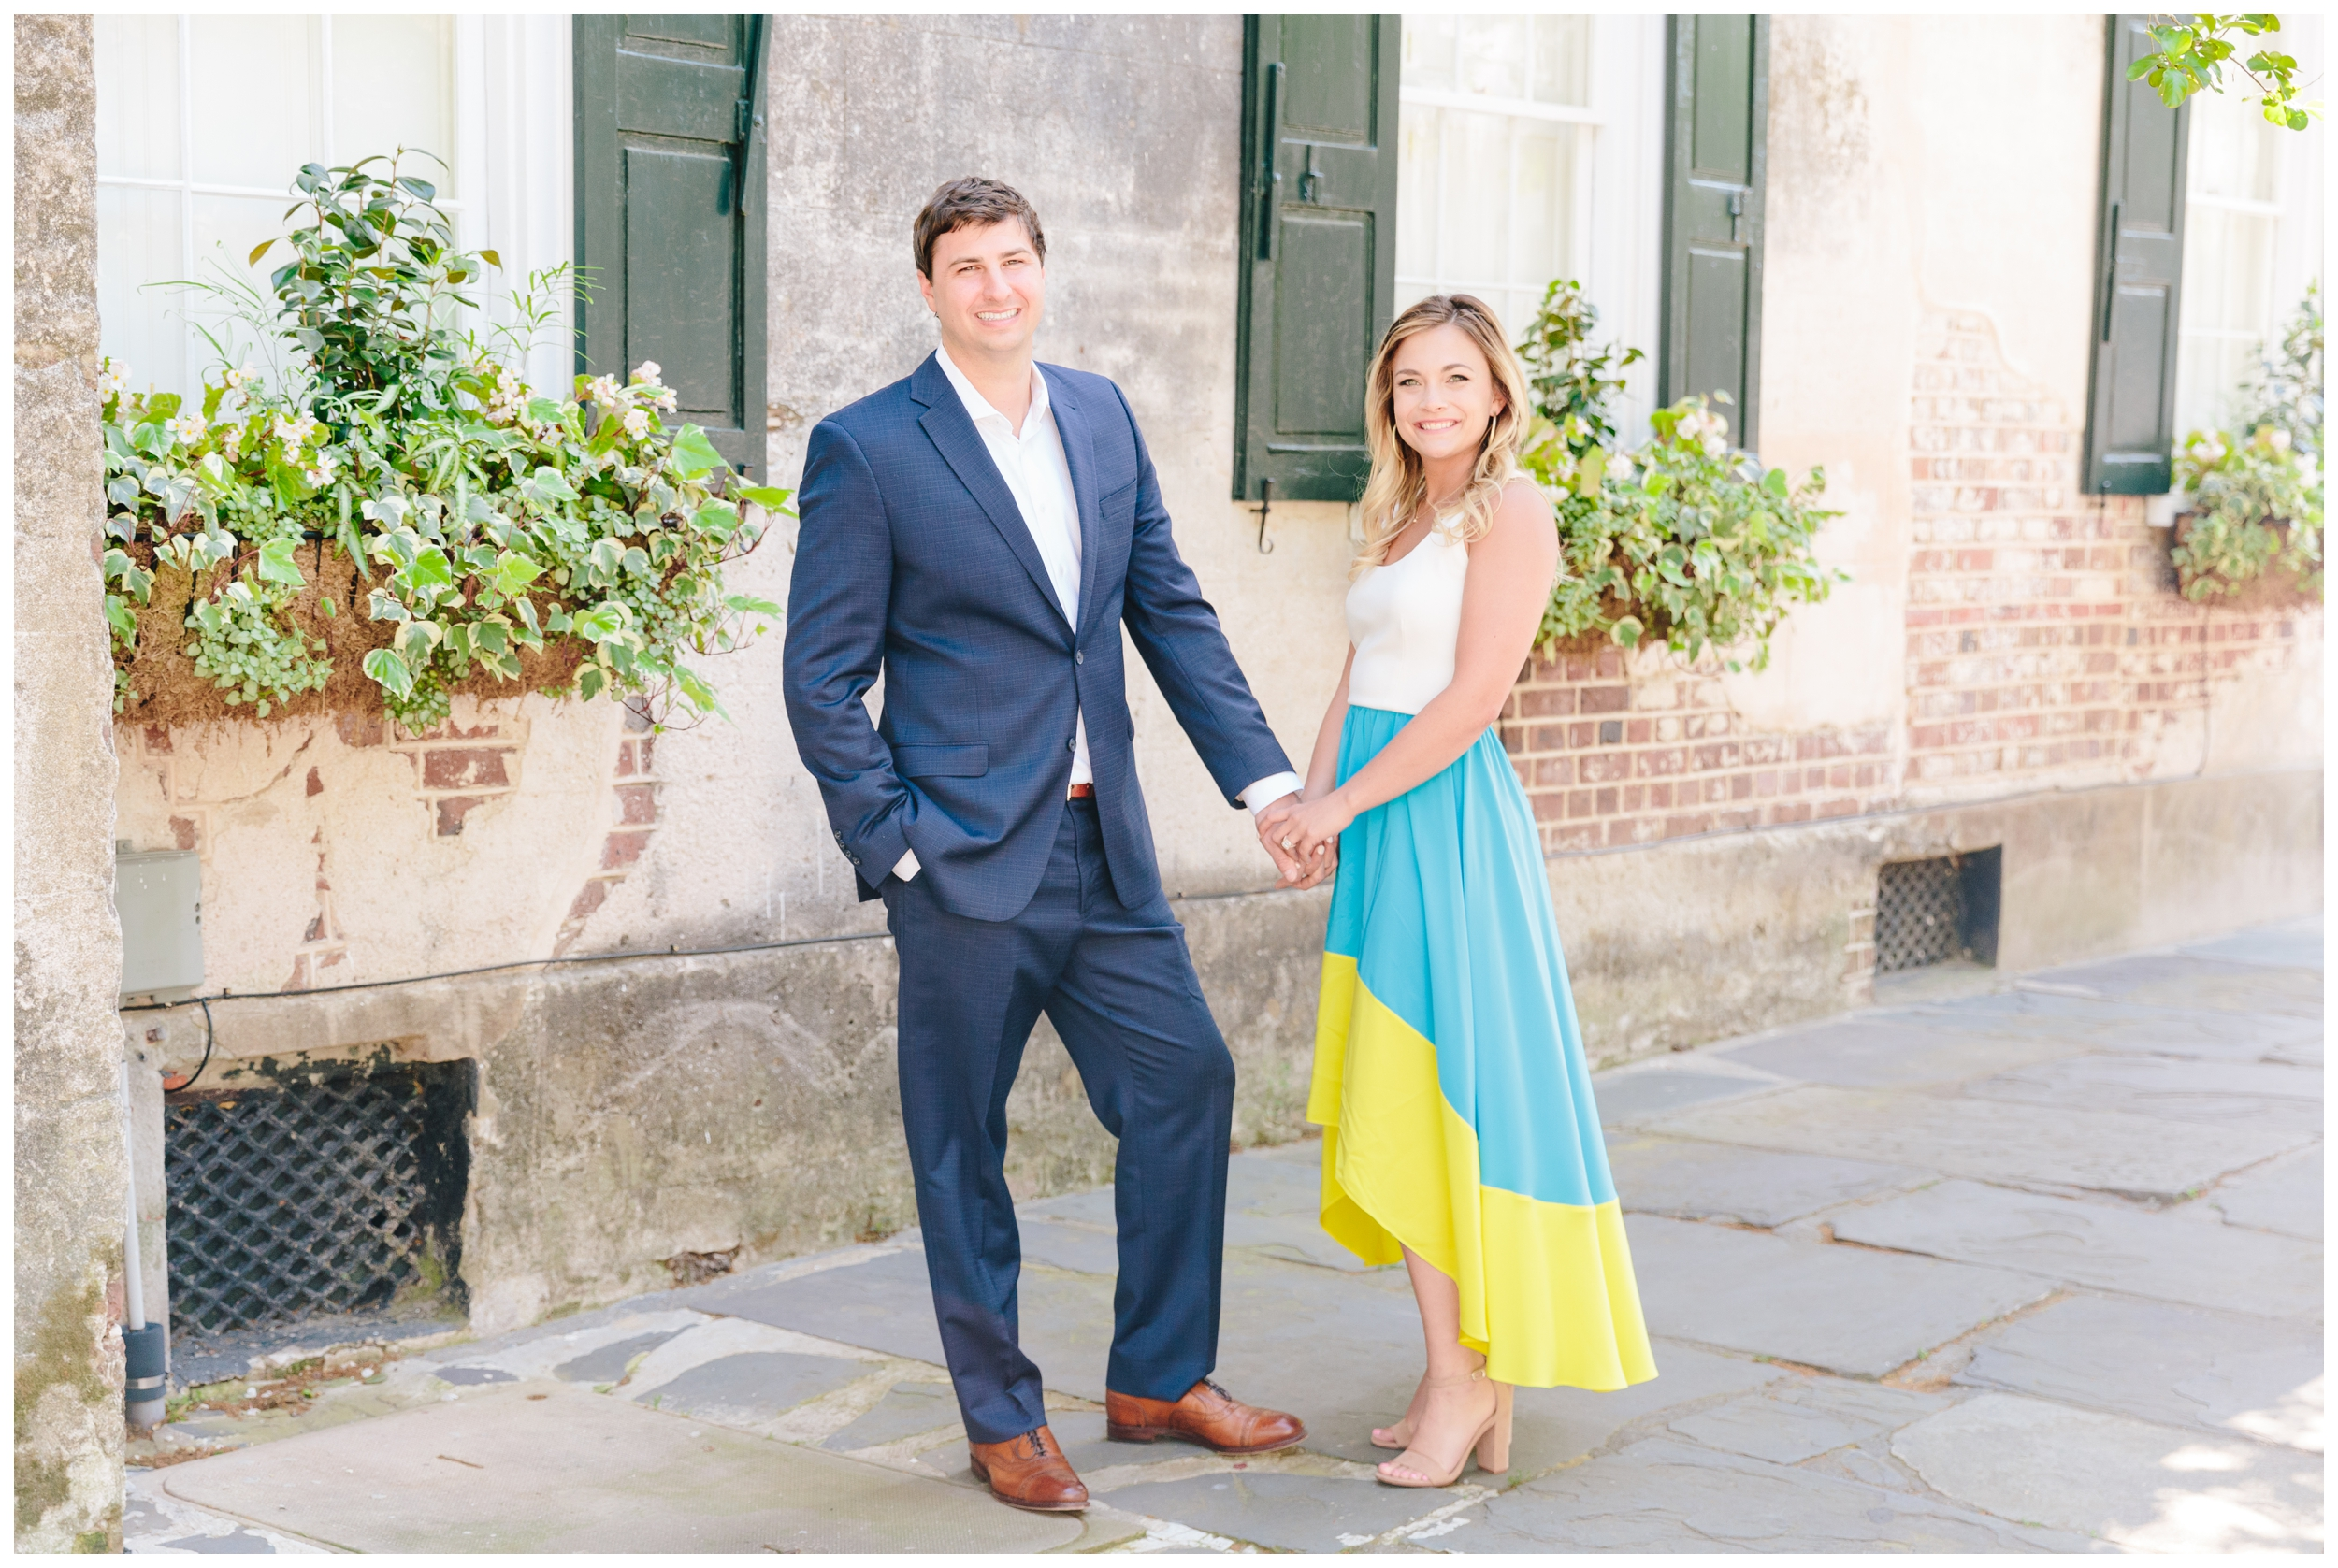 bride and groom holding hands in front of window boxes